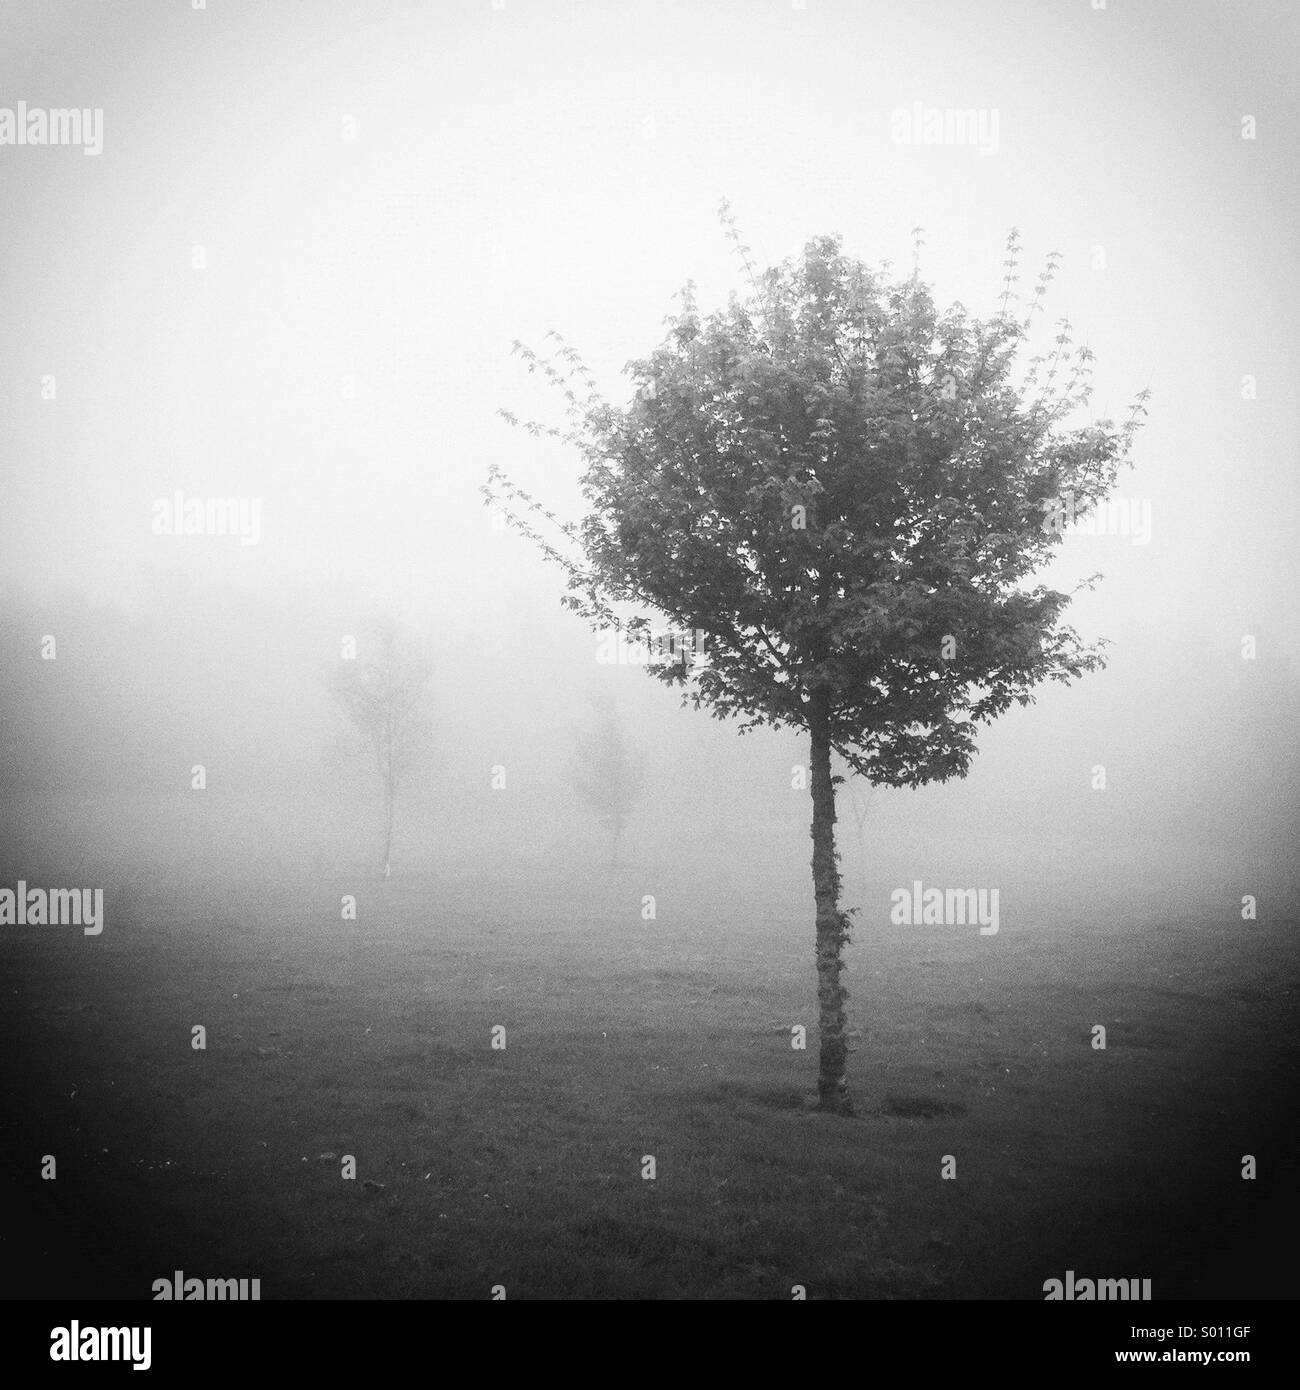 Trees in the fog - monochrome. - Stock Image